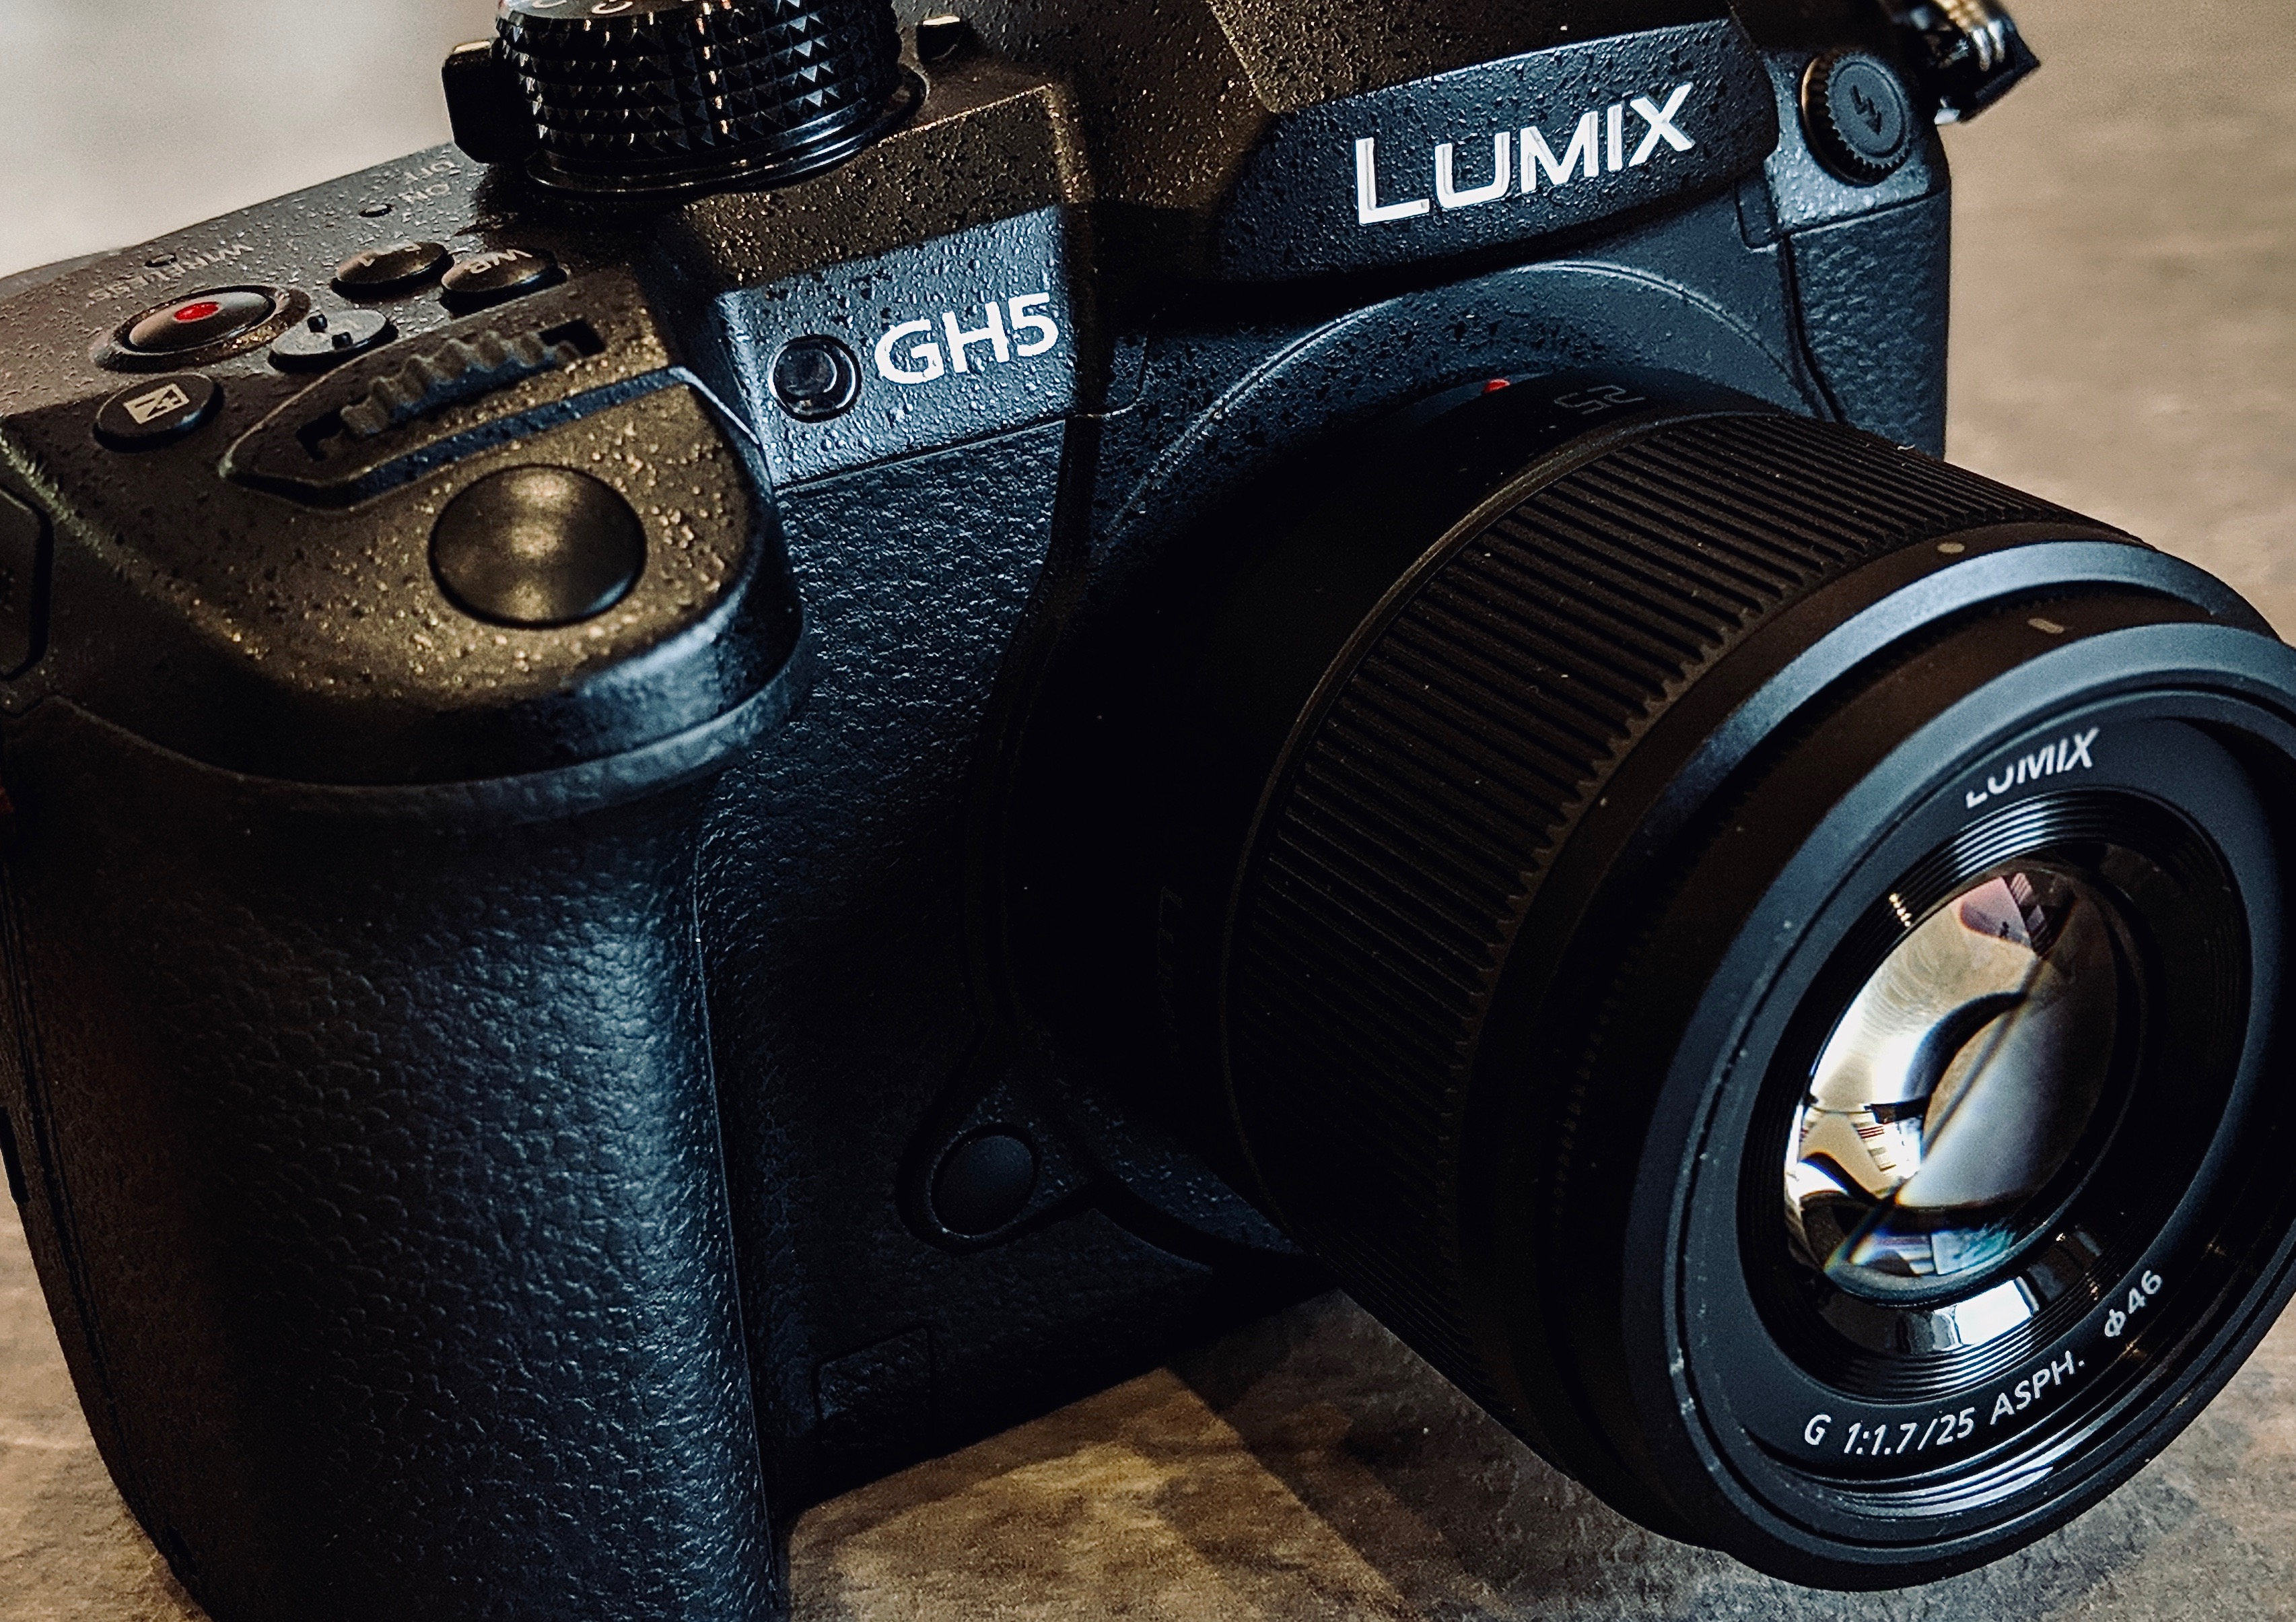 This picture shows a close-up of a Panasonic GH5 camera